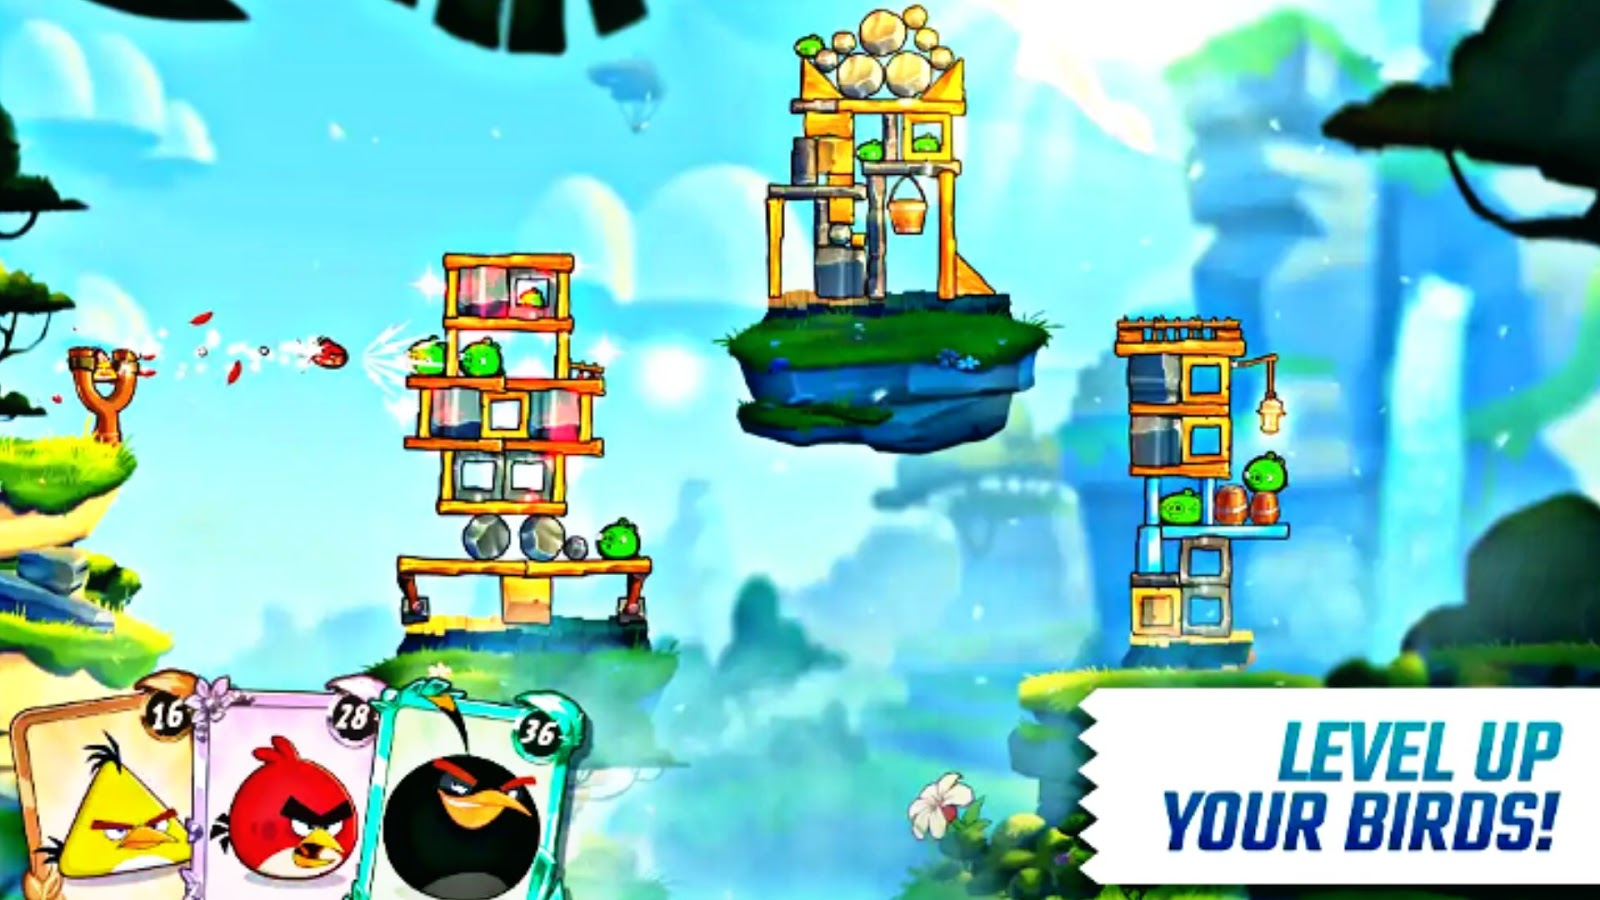 Angry Birds 2 MOD Apk Latest Version 2 28 1 {Unlimited Gems